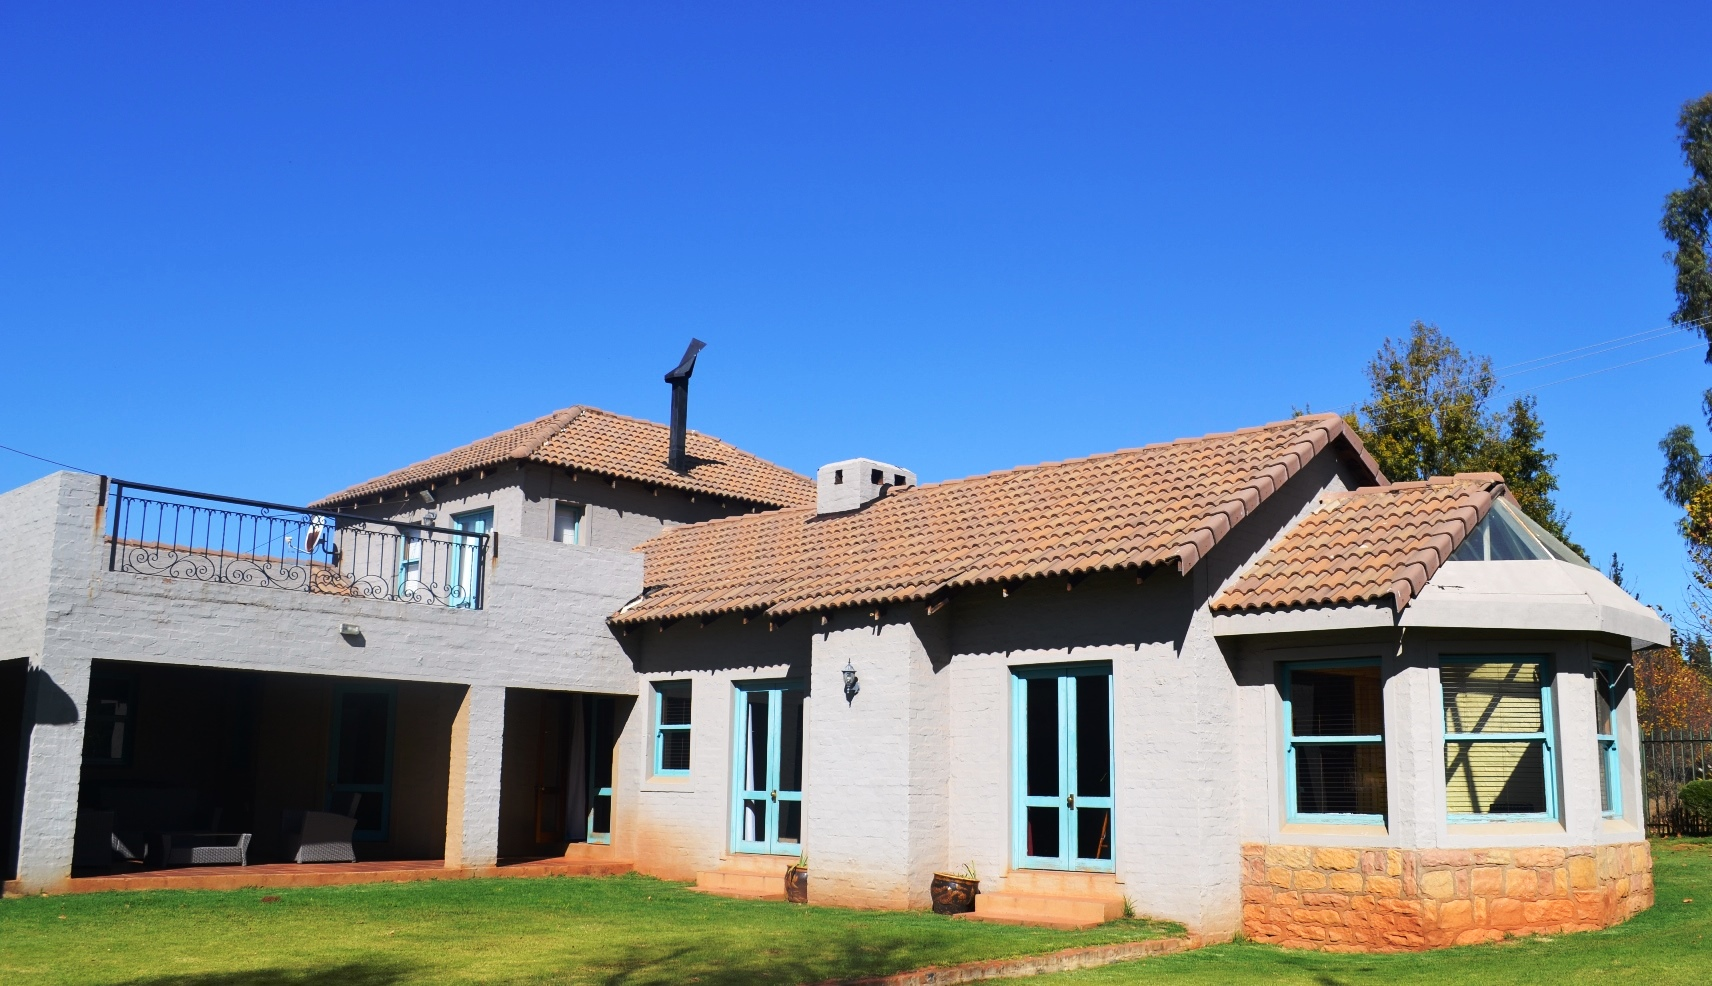 ZH308_Ptn_1_of_Erf_34_Four_Bedroom_House_Dullstroom__24_